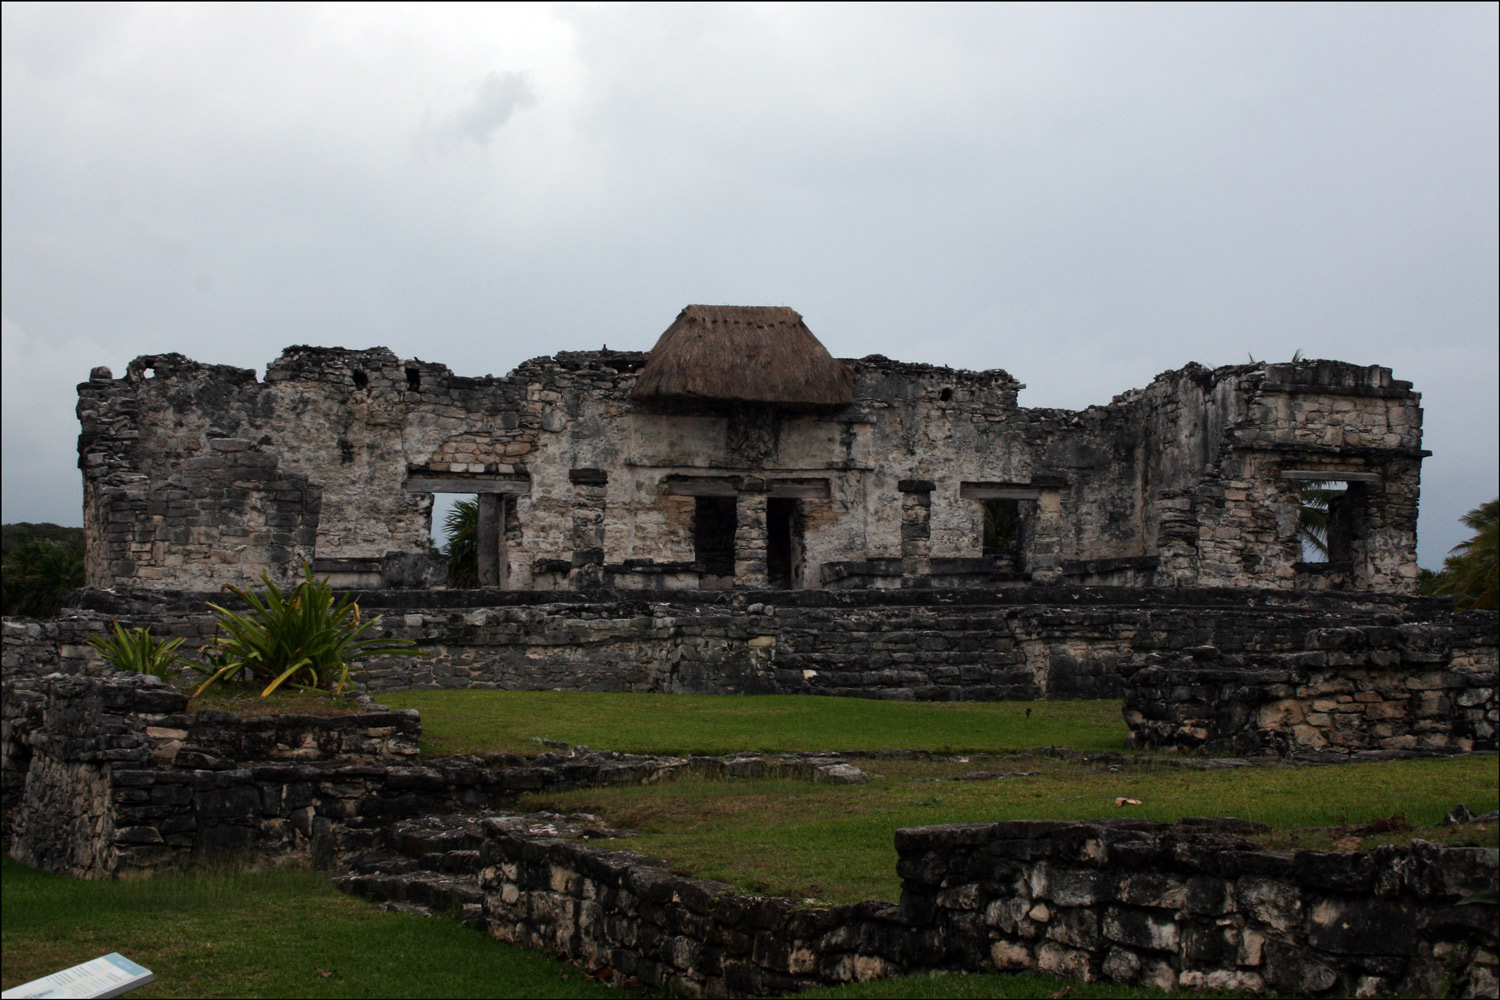 The House of the Halach Uinic in Tulum - 1